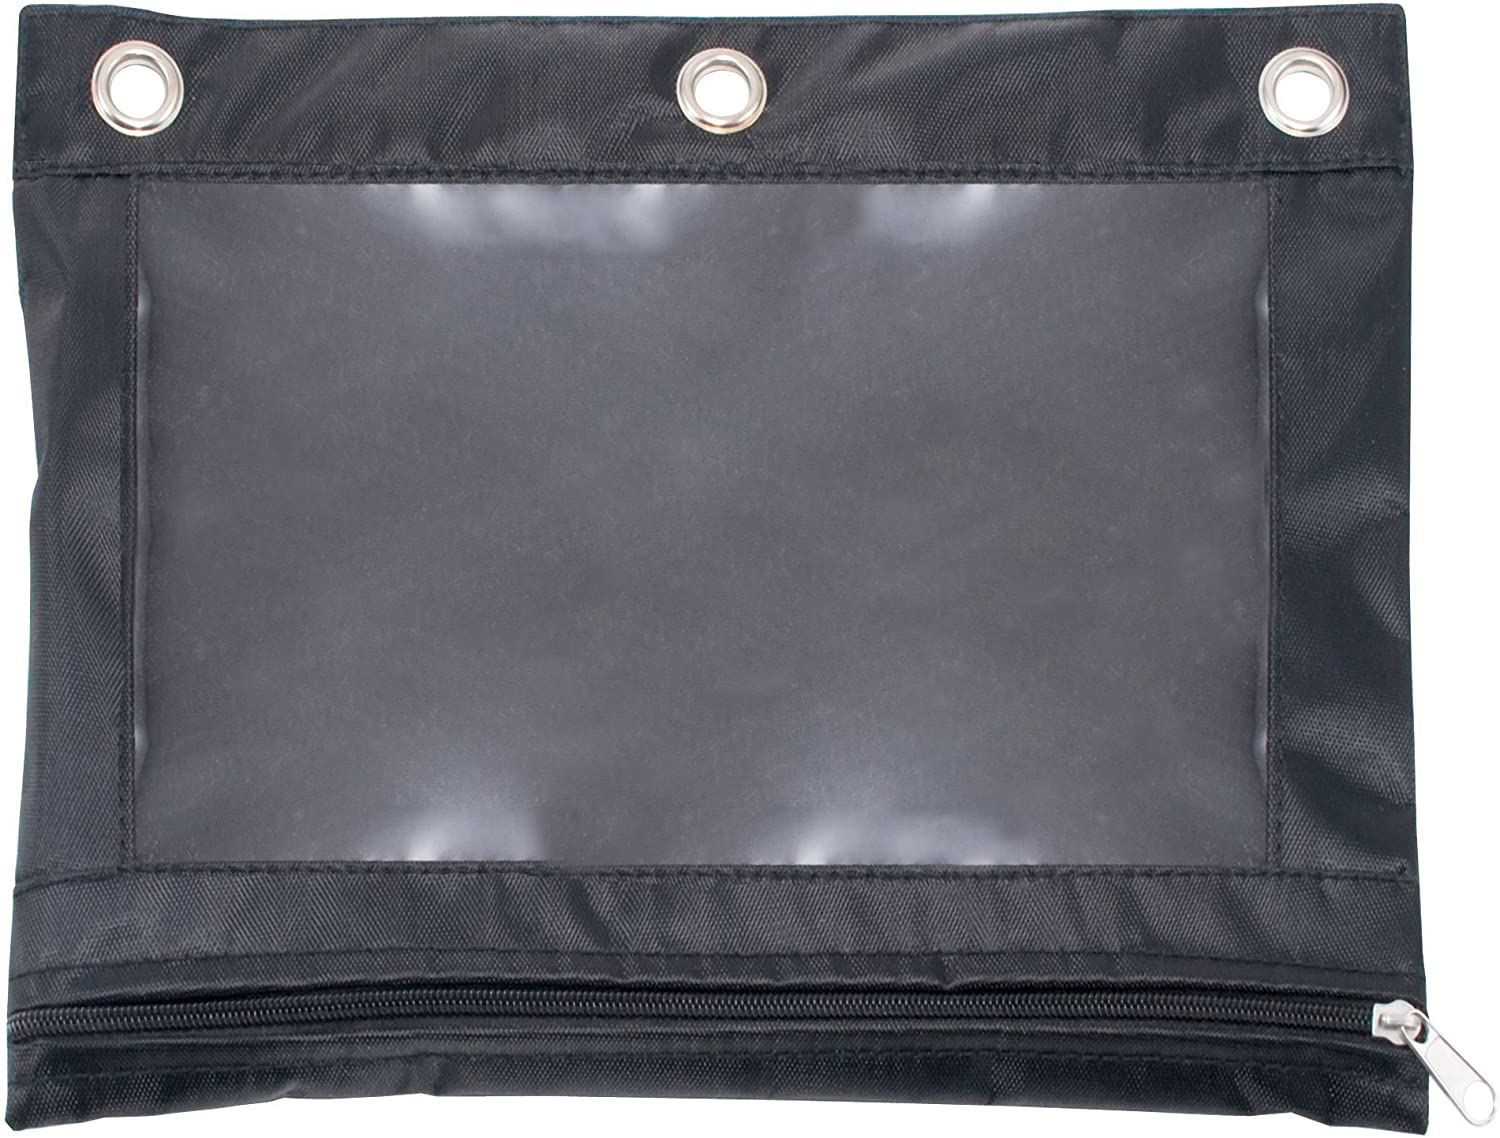 """ADVANTUS Zippered Binder Pencil Pouch with Rivets, 7-3/8"""" x 10"""", Black with Clear Front, Pack of 3 (63067)"""